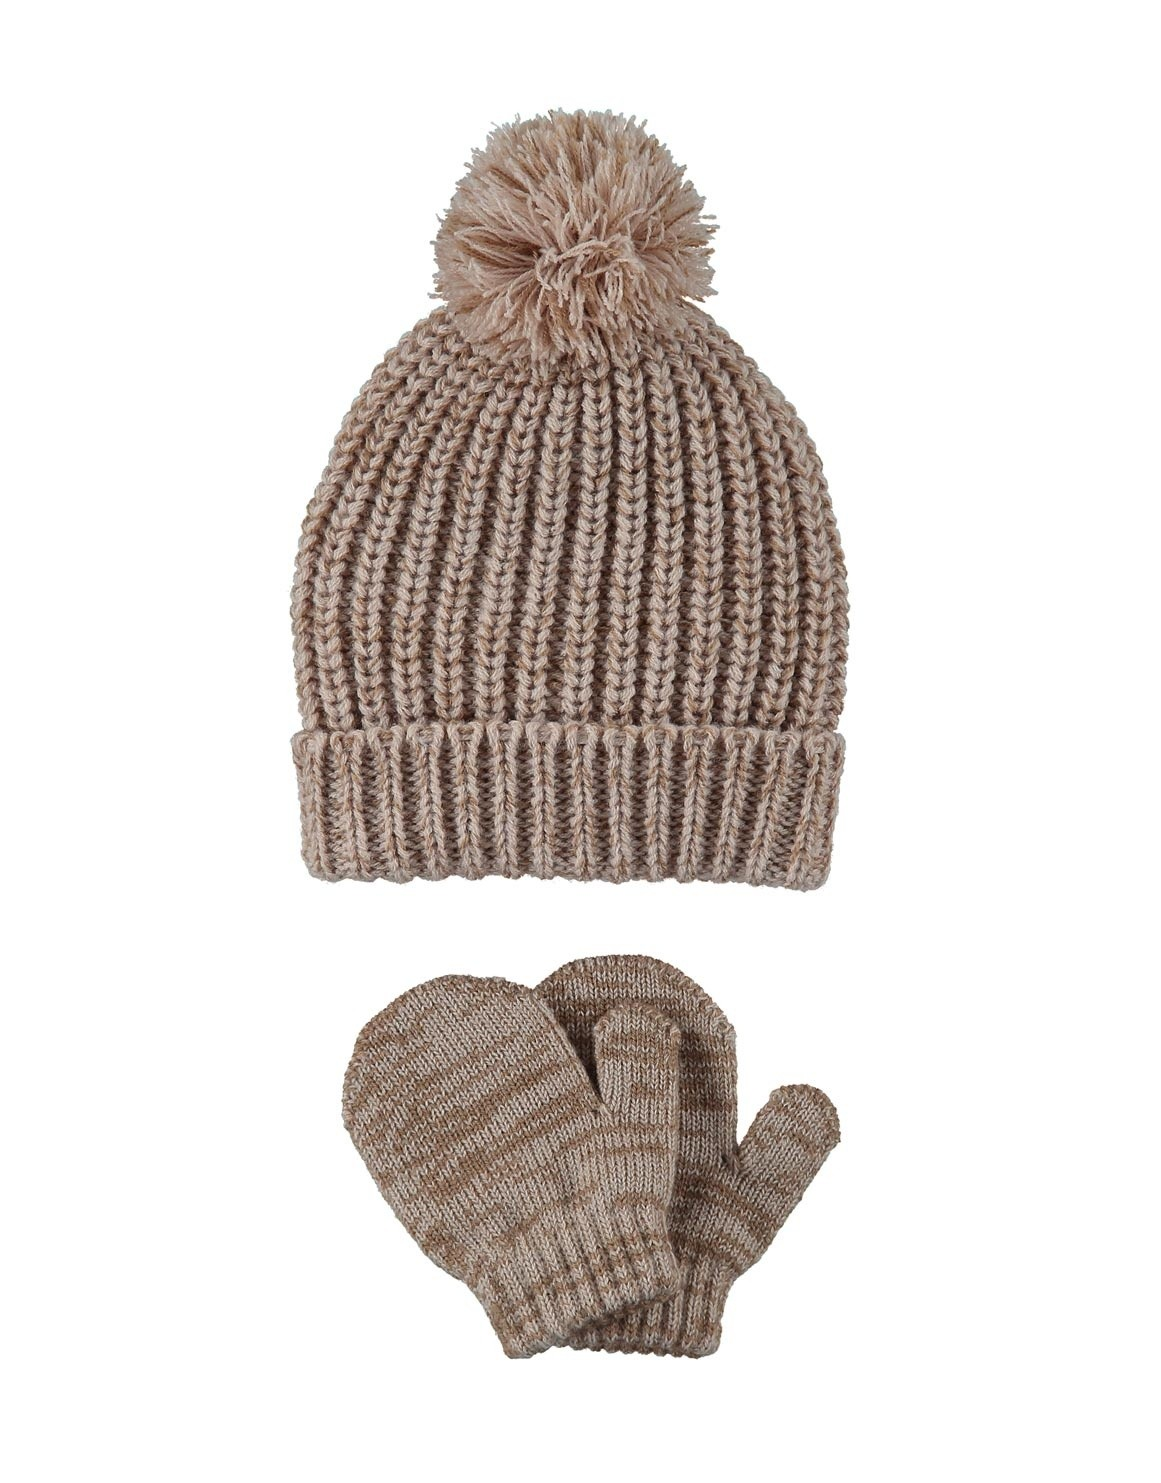 How To Keep Your Baby Warm All Winter Woolworths Co Za